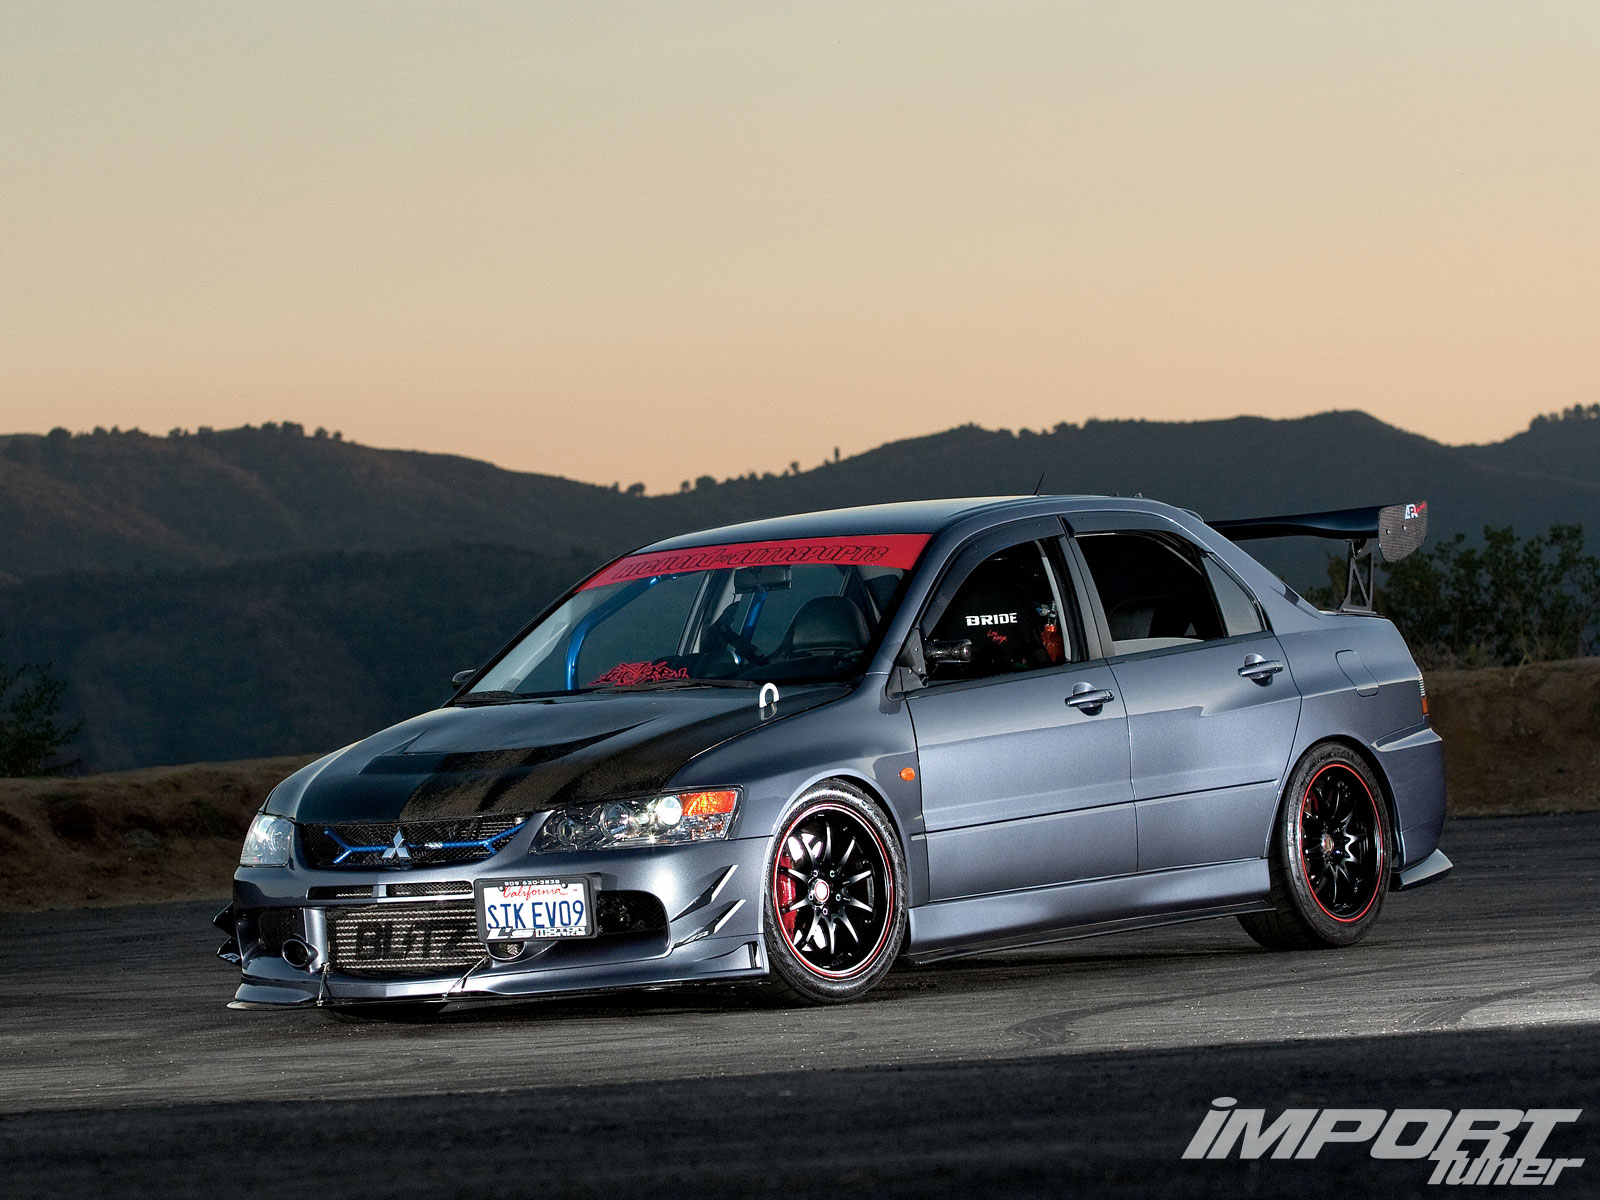 Download Mitsubishi Lancer Evolution 2006 6